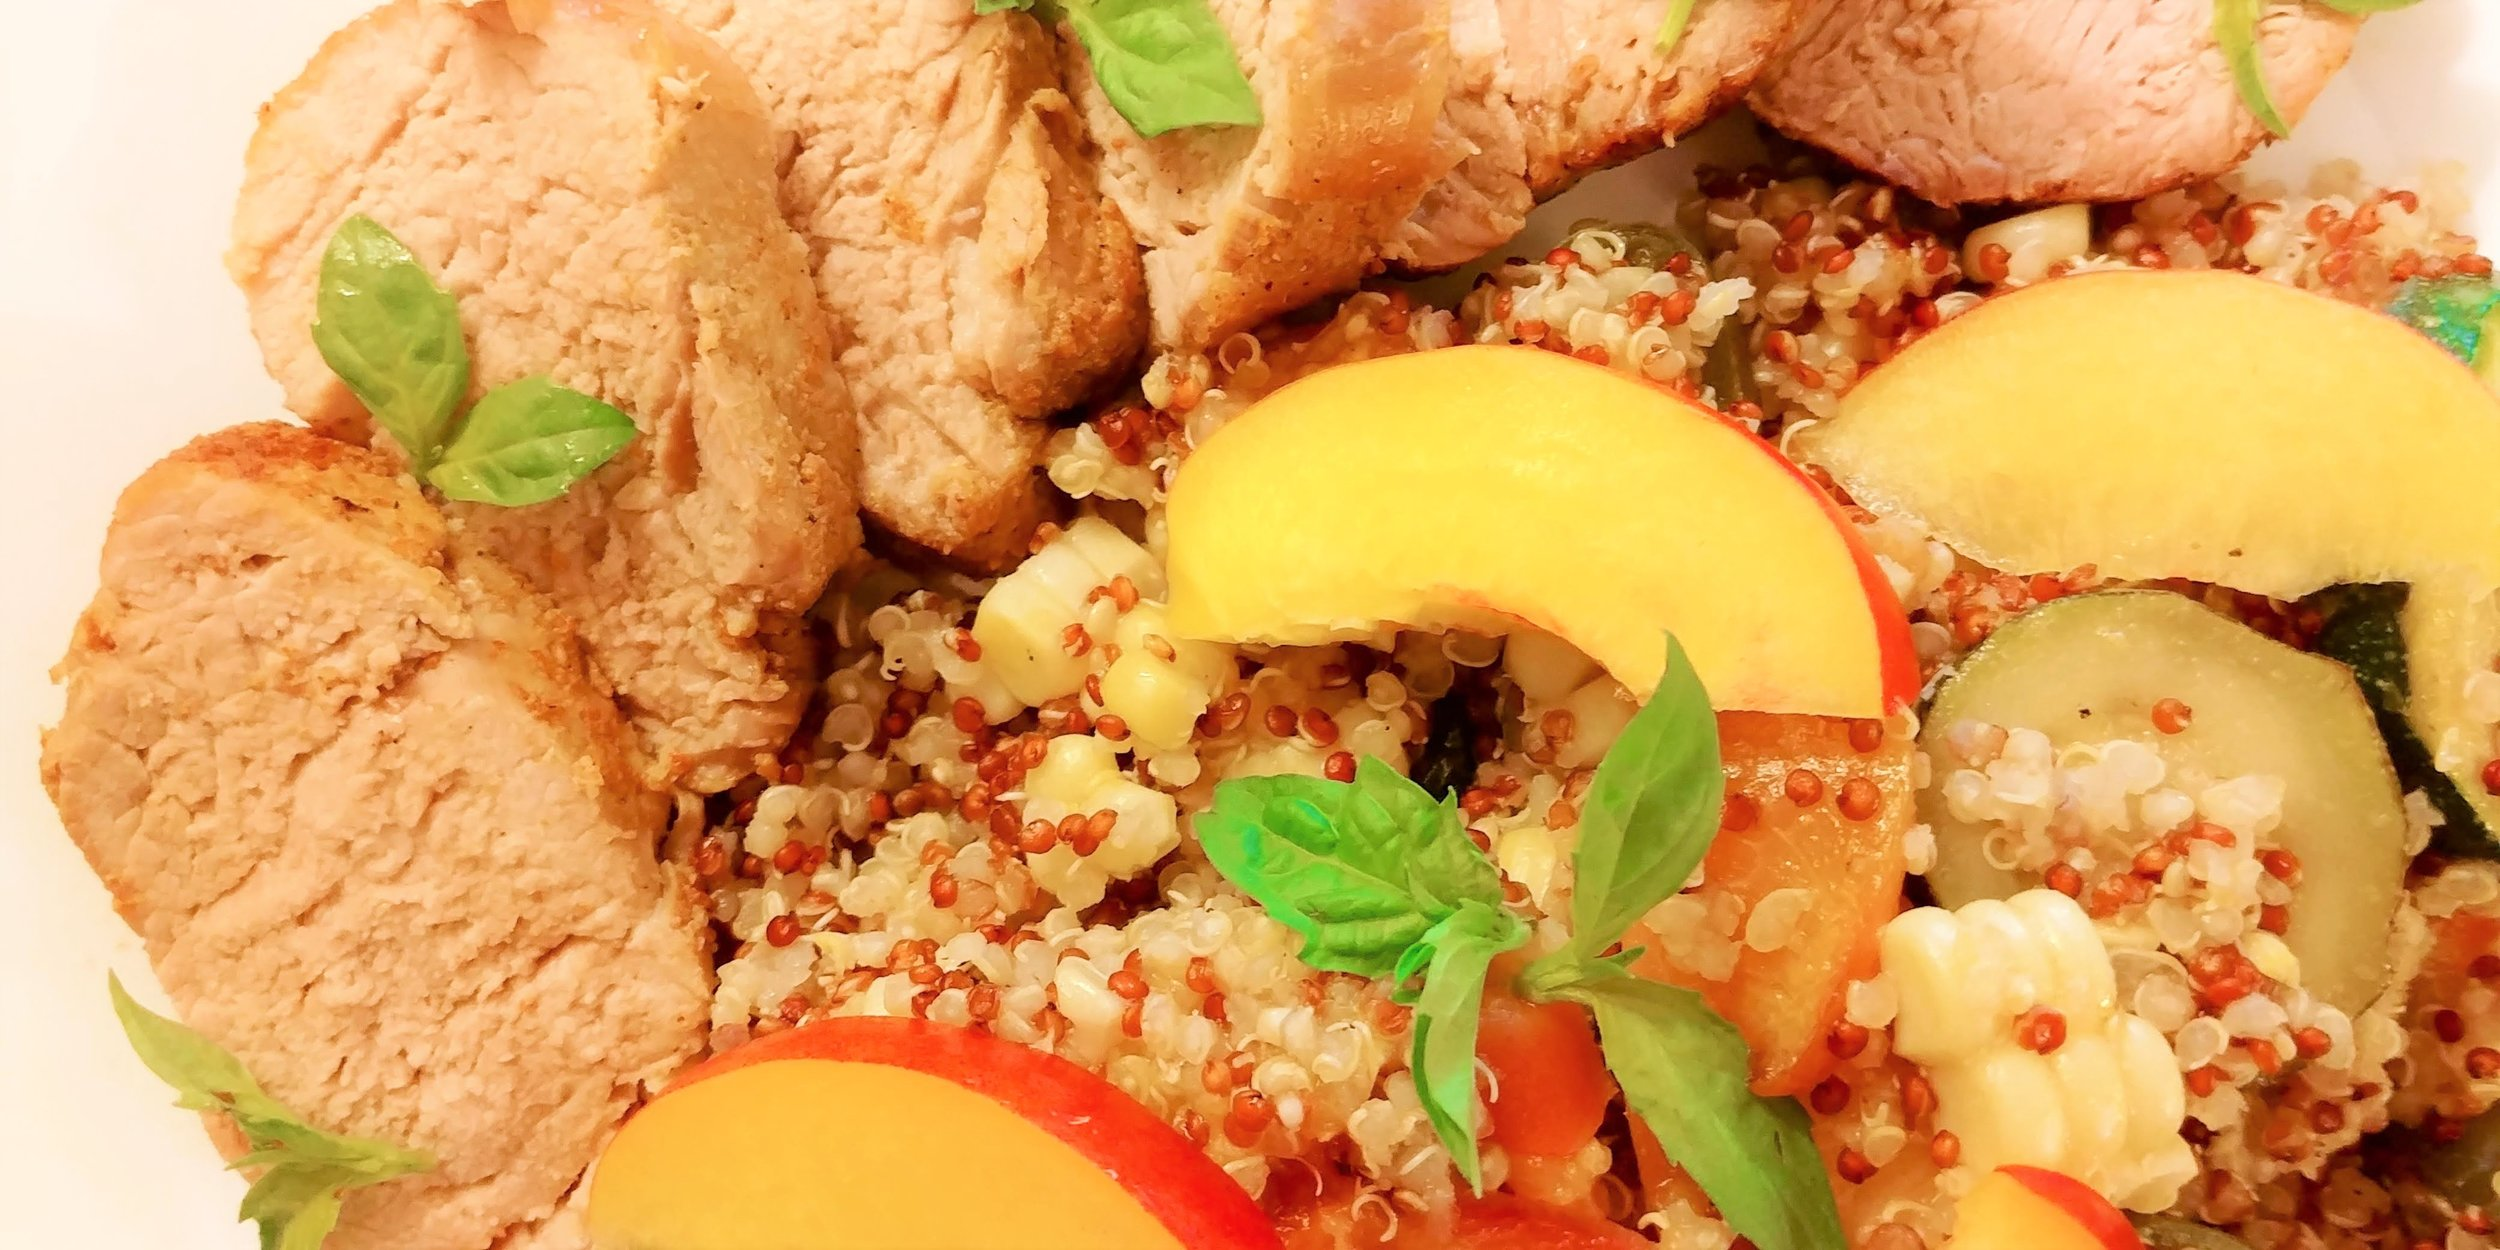 Ends+Stems Recipe: Pork Tenderloin with Nectarines, Basil & Jalapeno Quinoa